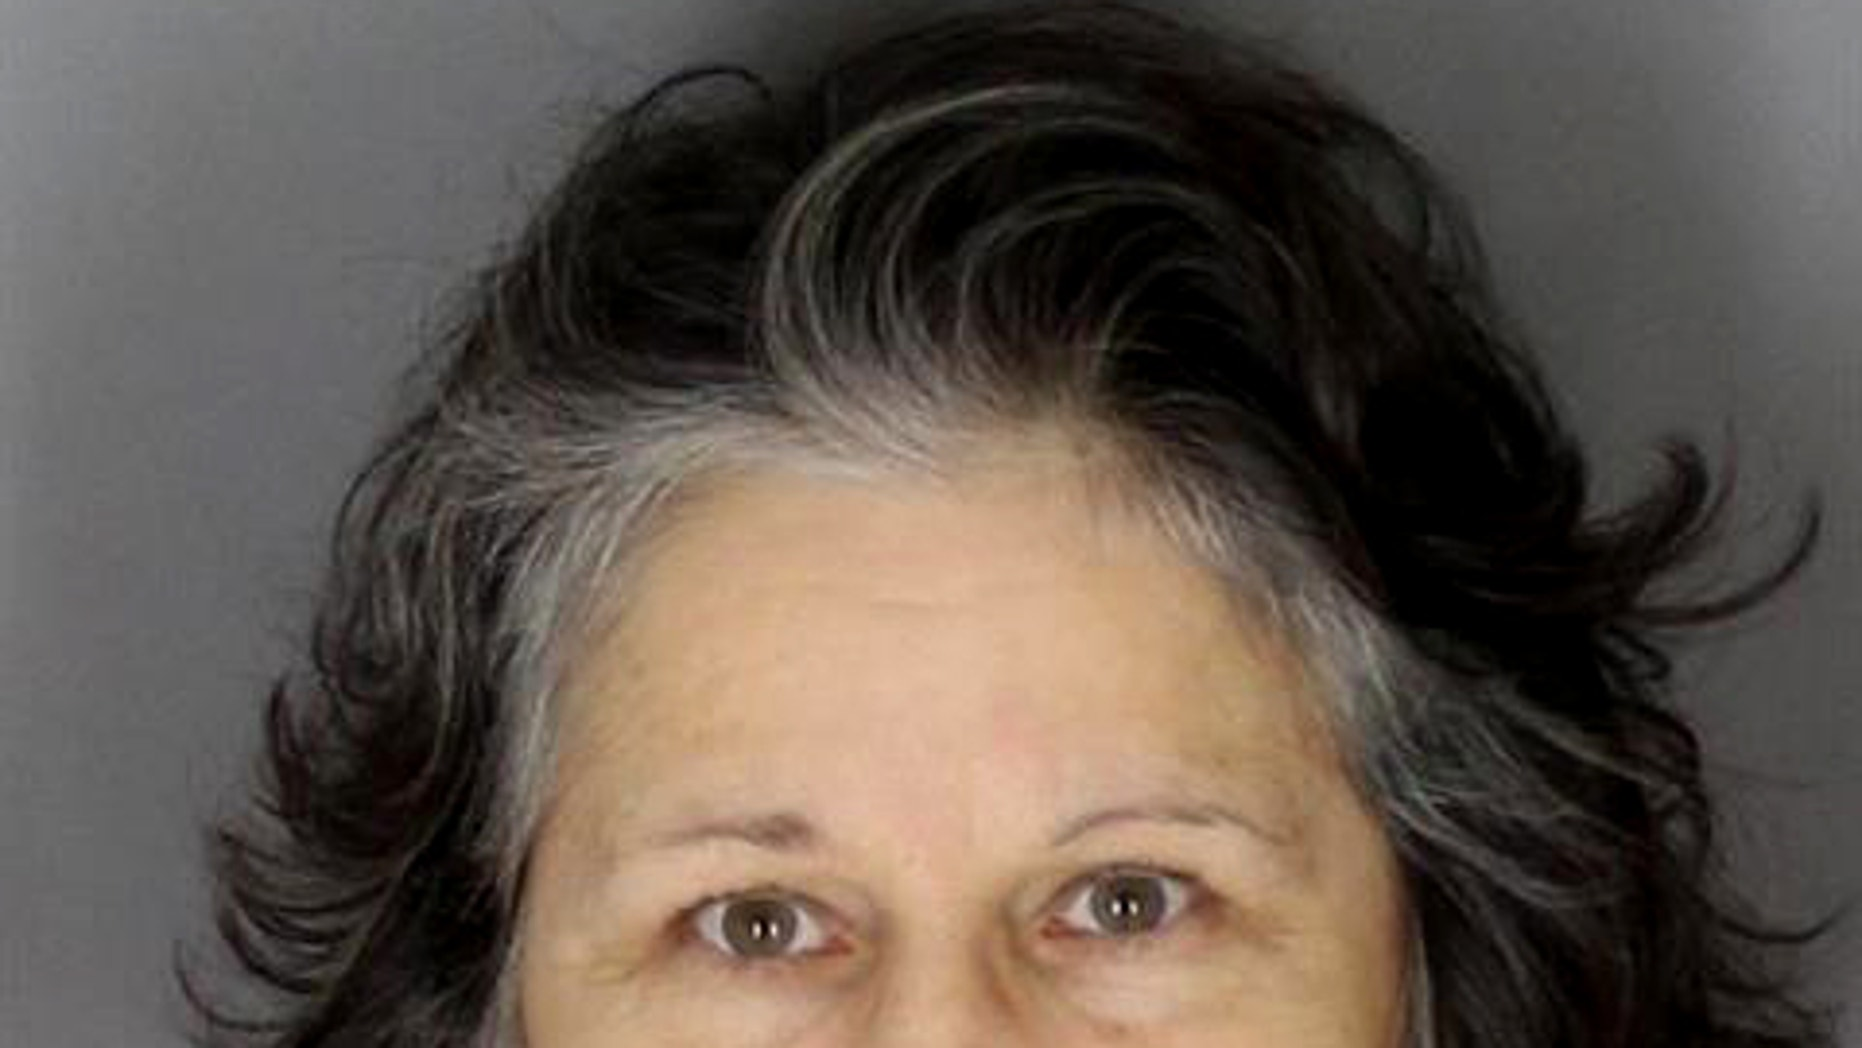 This undated booking photo provided by the the Oakland County Sheriffs Office shows Sylvia Majewska. Majewska is charged with first-degree murder in the Nov. 23, 2014, killings at her home in Oakland County's Addison Township, 45 miles north of Detroit. A judge in Rochester Hills put proceedings on hold Thursday, Feb. 12, 2015, after a psychiatrist said Majewska is incompetent to stand trial. (AP Photo/Oakland County Sheriffs Office via Detroit Free Press)